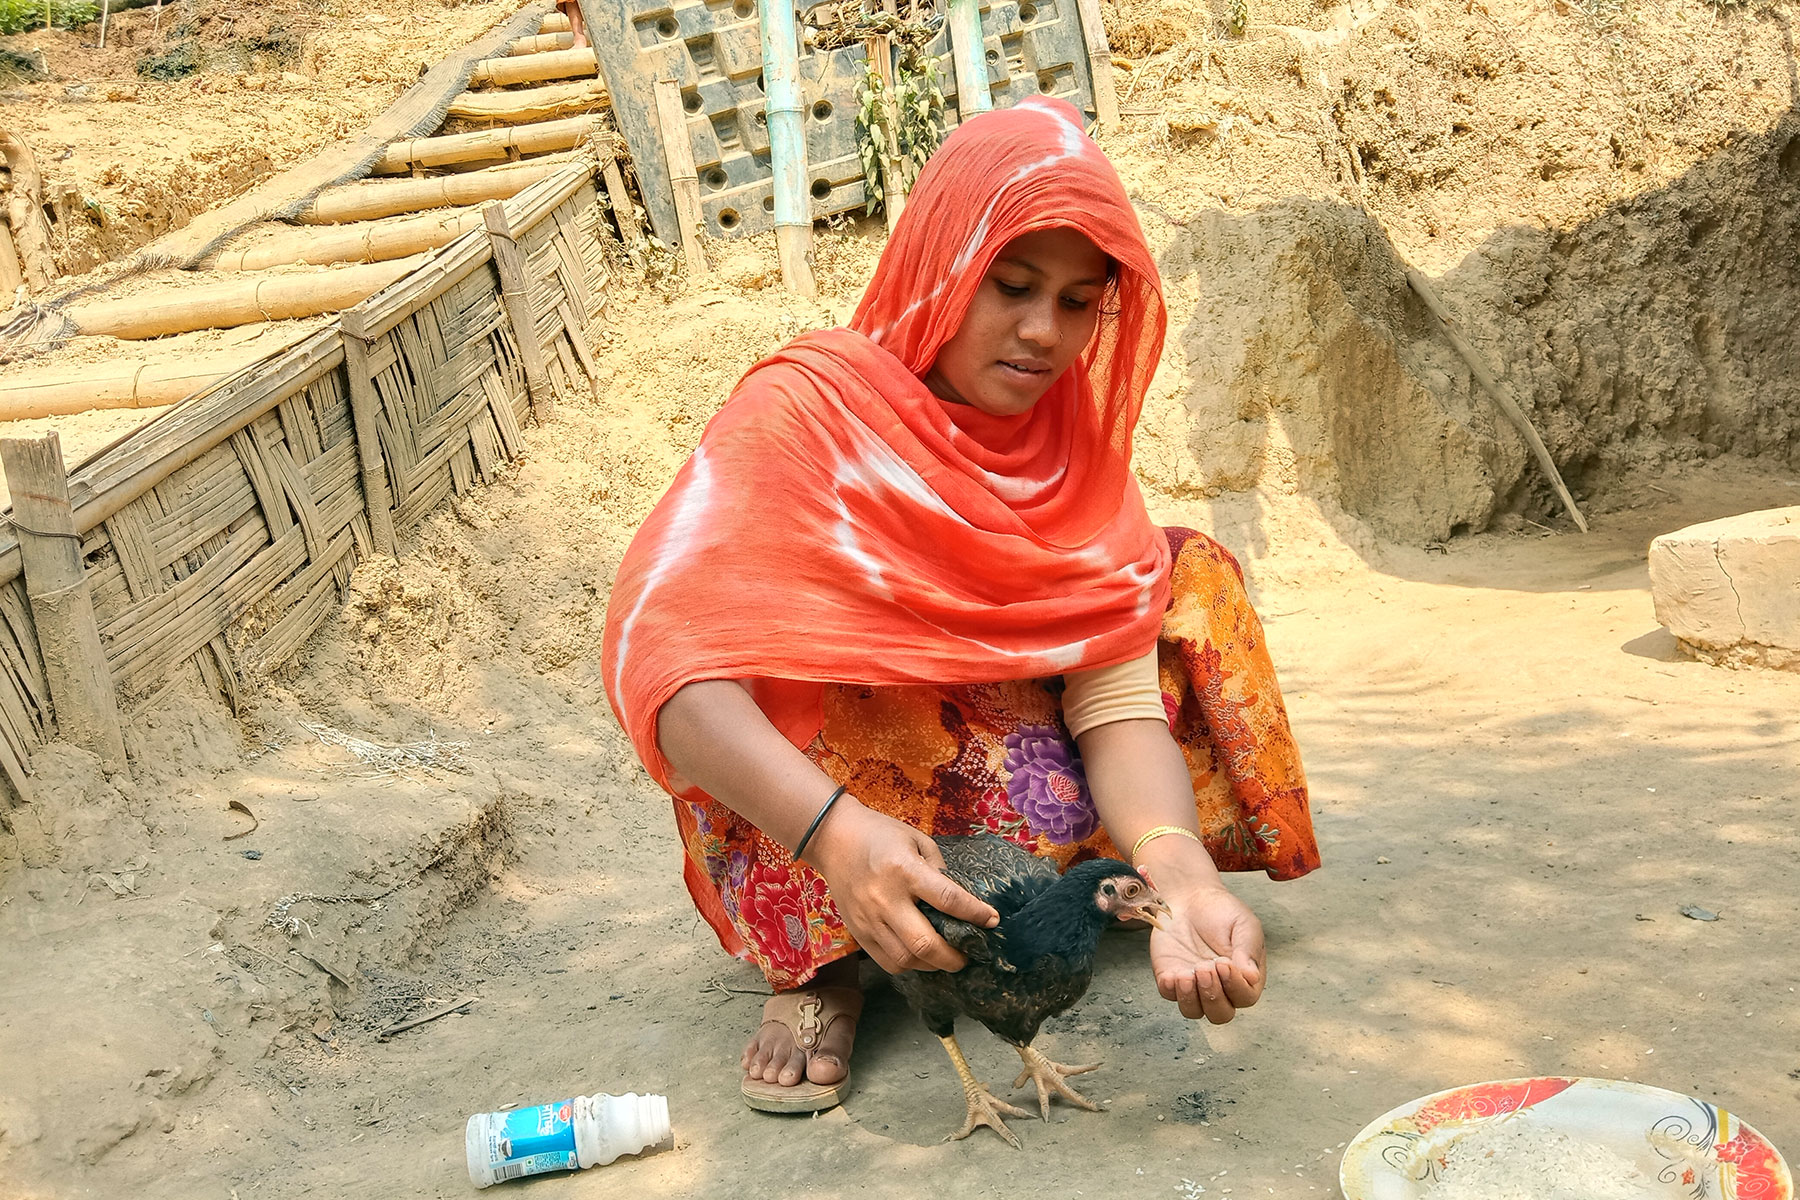 Cash for work schemes are a common way to provide people with employment and income. For single mothers and people living with disabilities however, opportunities are very limited. LWD/ RDRS in Bangladesh distributed poultry to women-headed households and persons with disabilities, to provide a home-based source of income. At the same time, having chicken and eggs at home improves the diet for the family. LWF also distributed additional food such as milk powder, seasonal fruit and sugar to nursing mothers. Photo: Bela Wadud, RDRS/LREP